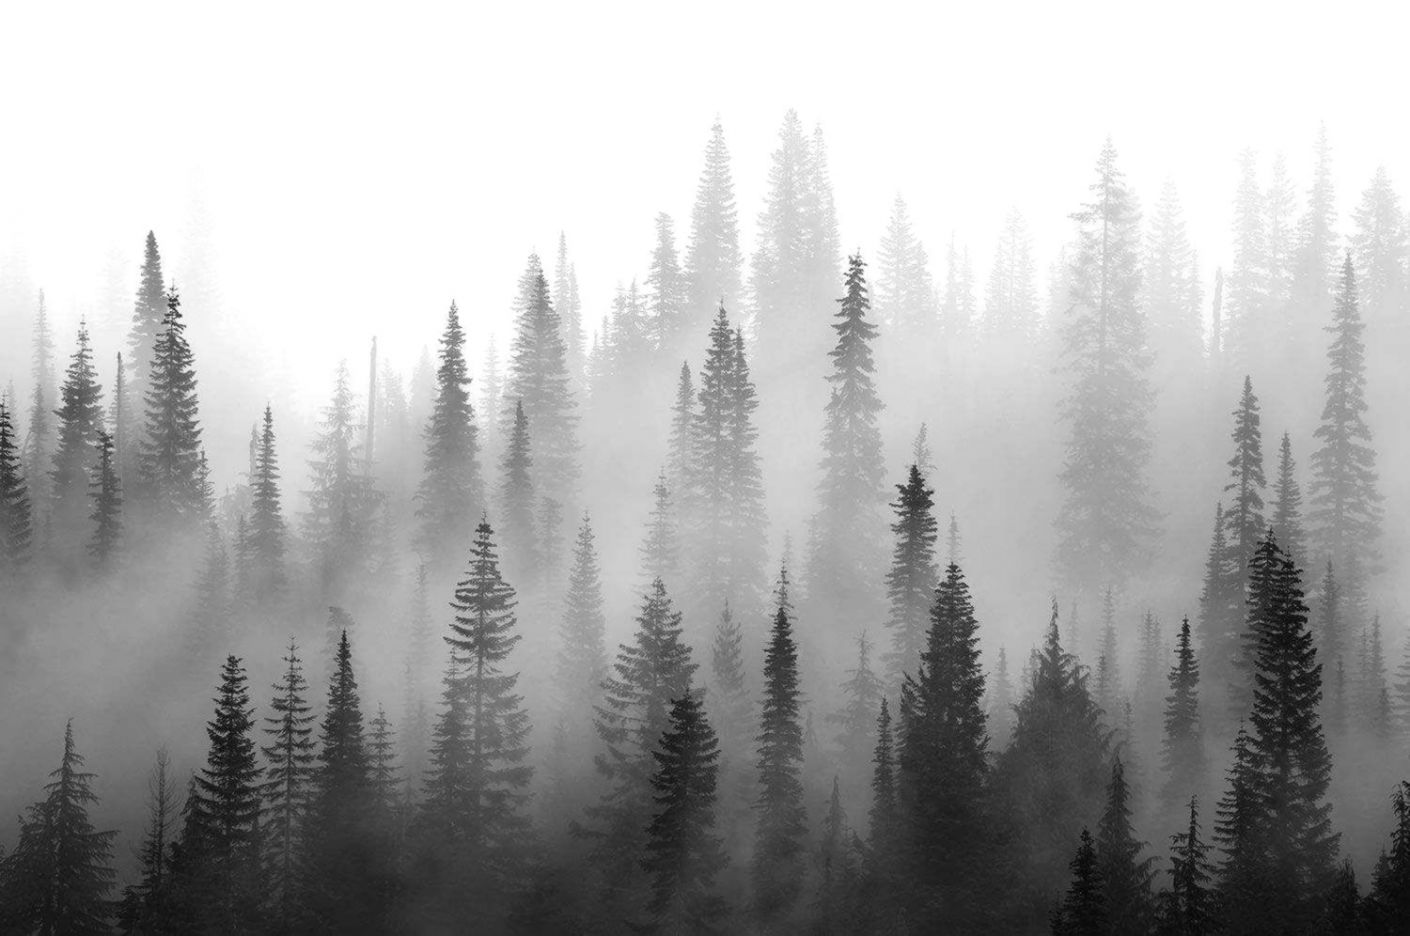 Black And White Misty Forest 2302780 Hd Wallpaper Backgrounds Download